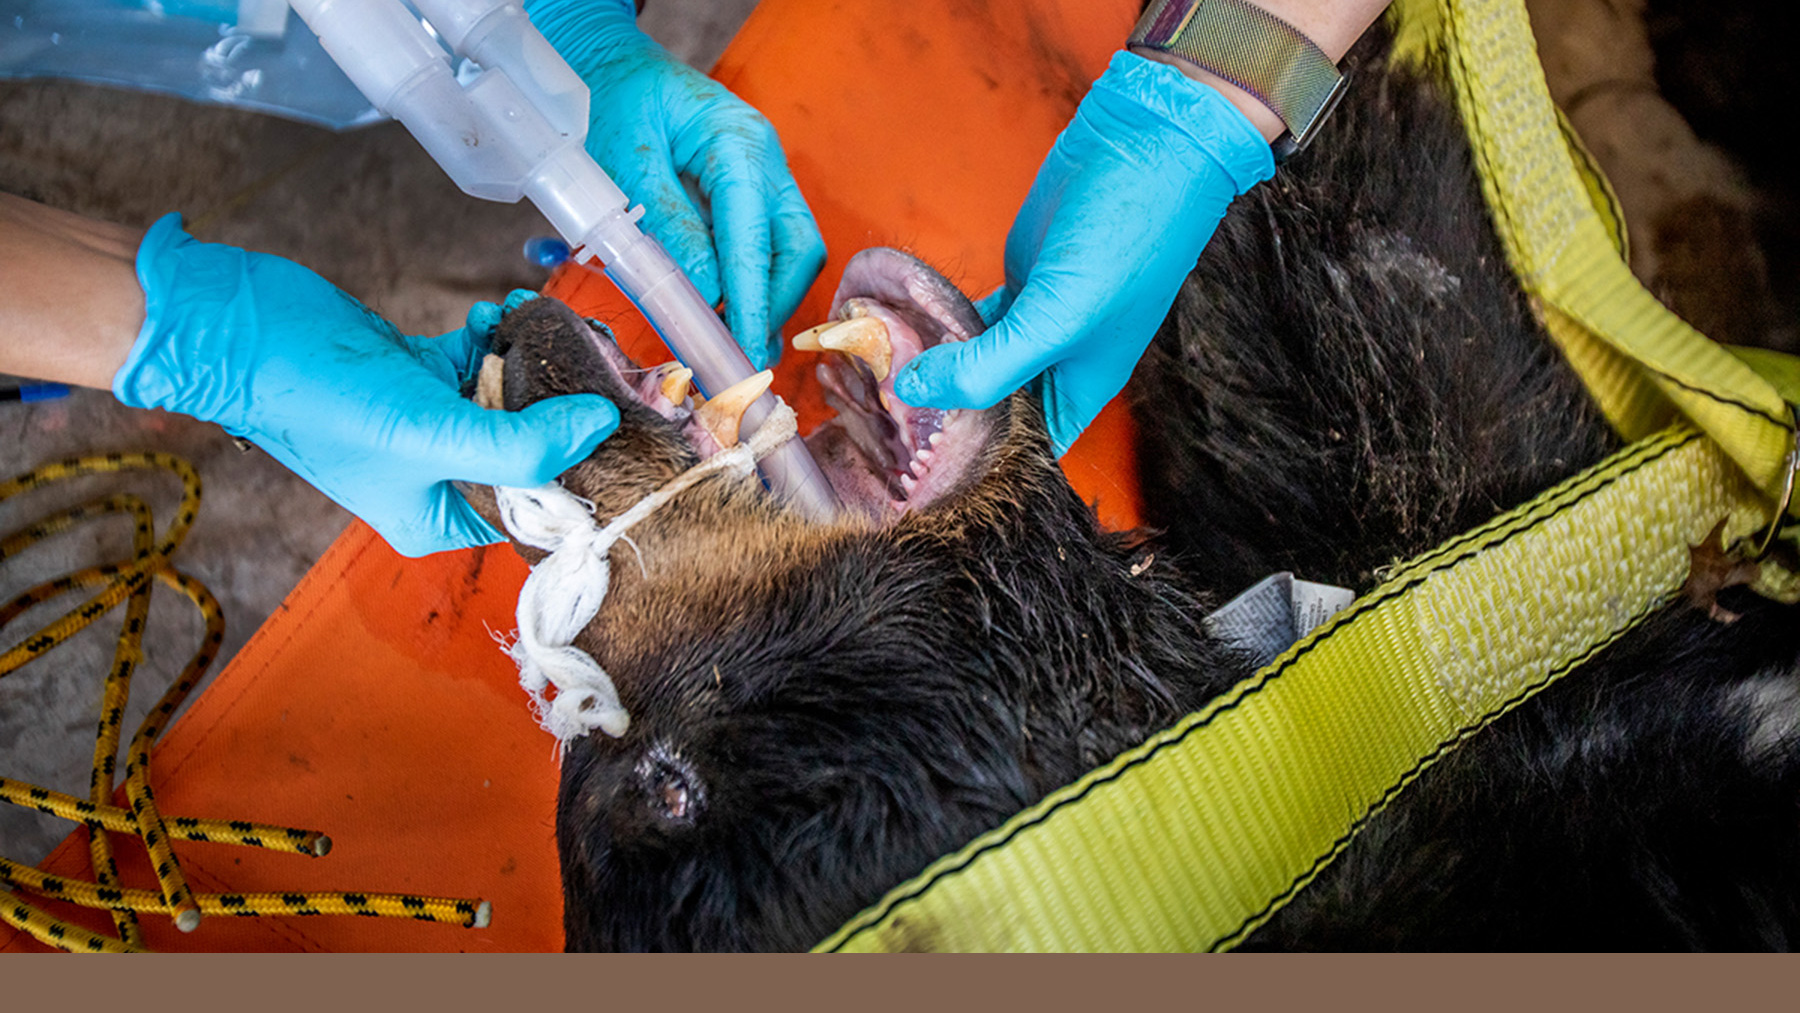 Students examine a black bear's incisors. Photo by Fred Zwicky